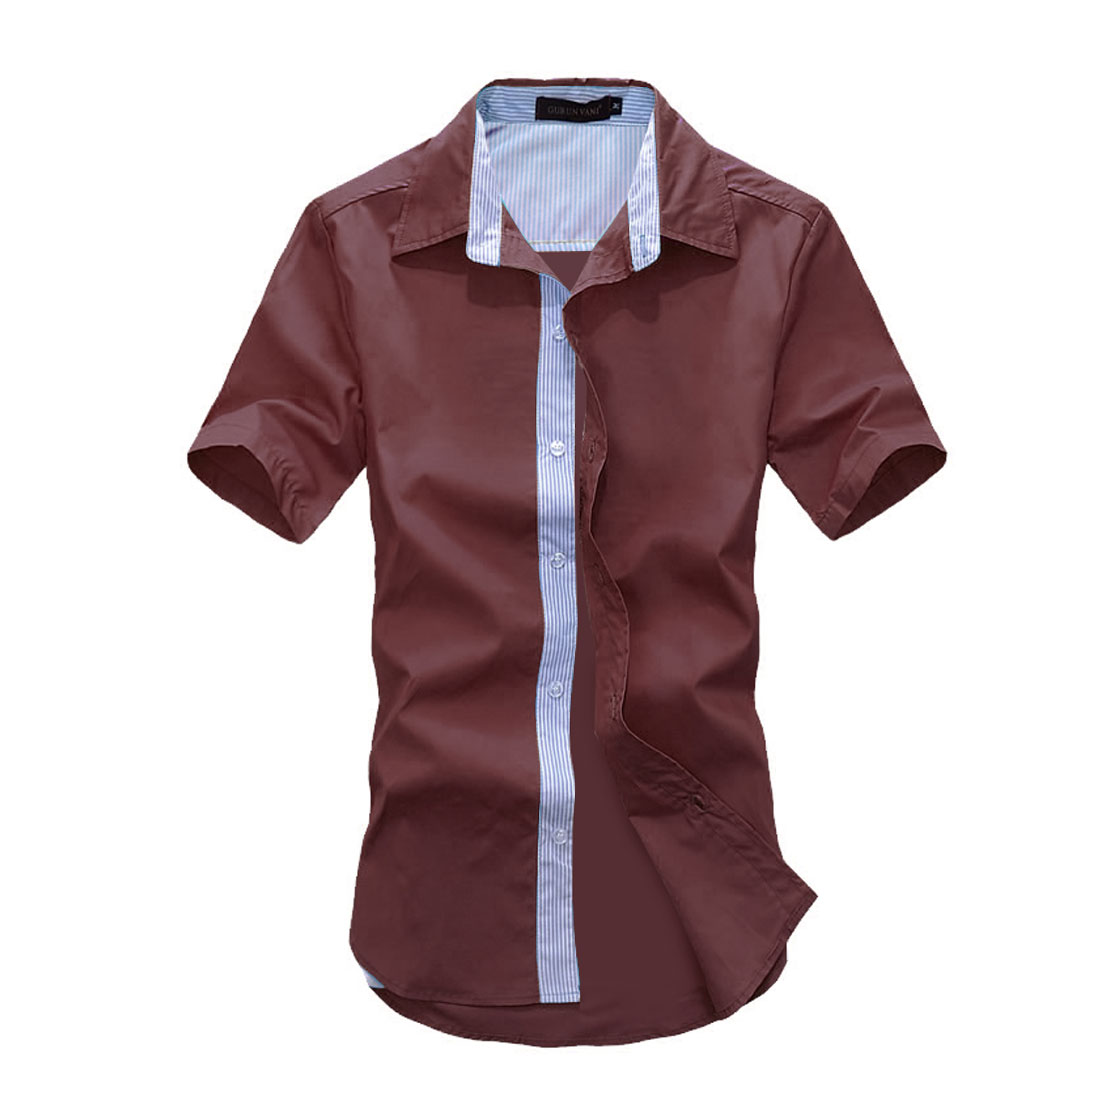 Men Single Breast Point Collar Fashion Spring Shirts Burgundy M